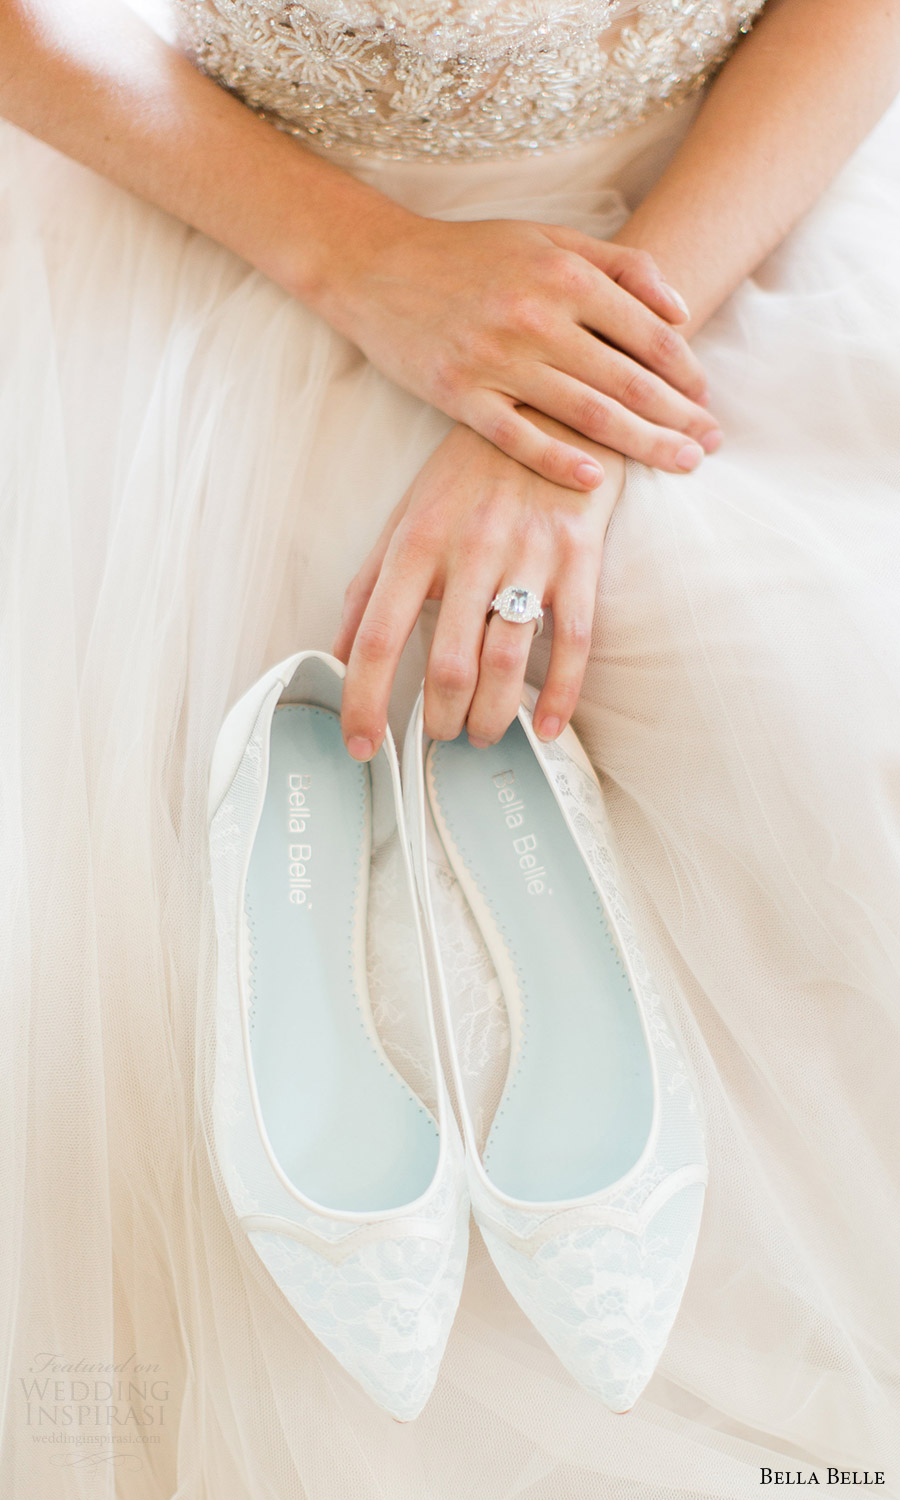 bella belle bridal shoes 2016 sophie scalloped chantily lace flat wedding shoes